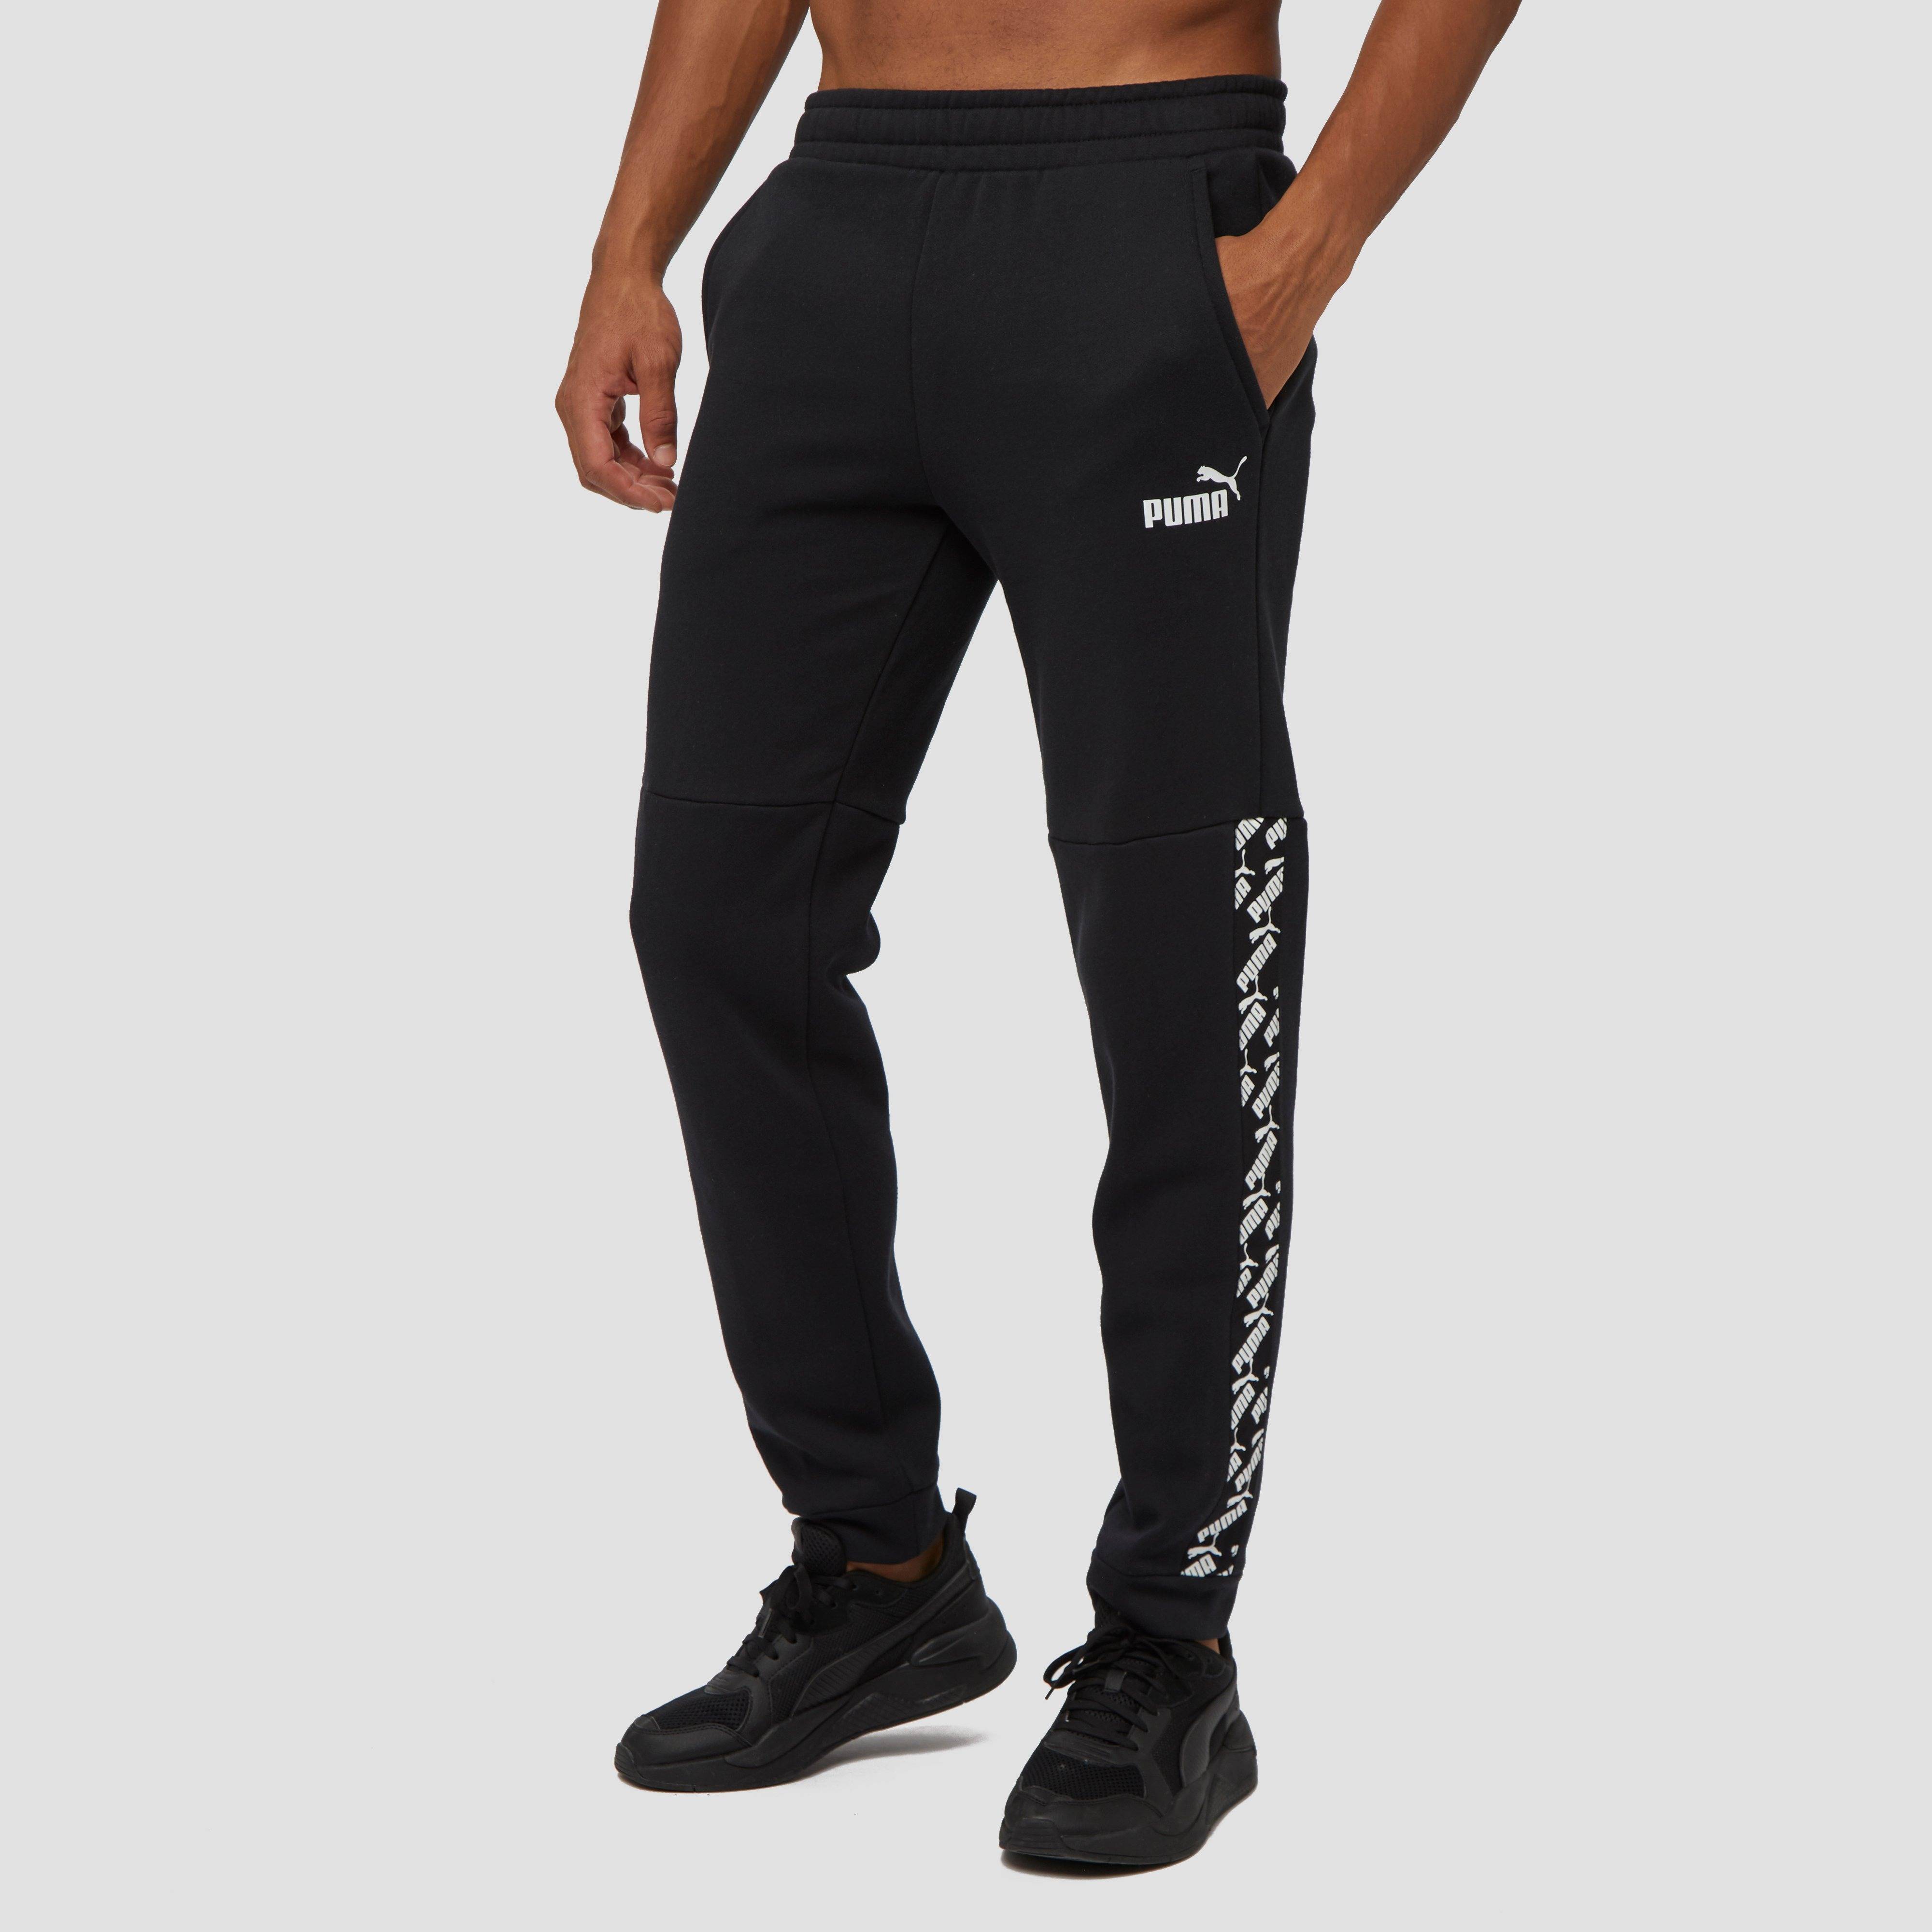 PUMA AMPLIFIED JOGGINGBROEK ZWART HEREN | Aktiesport